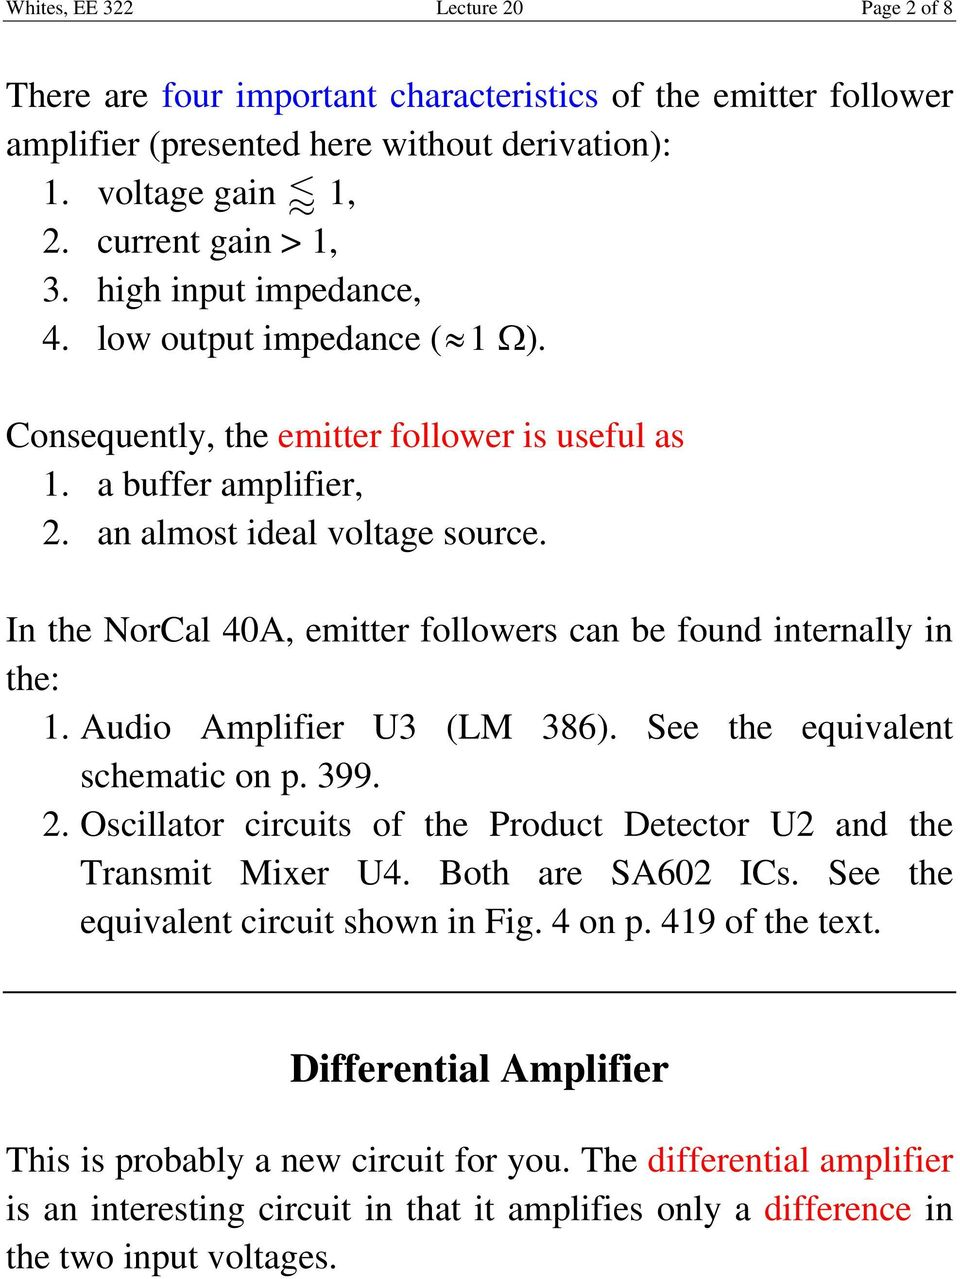 Lecture 20 Emitter Follower And Differential Amplifiers Pdf Circuit Audio Amplifir U3 Lm 386 S Th Quialnt Schmatic On P 399